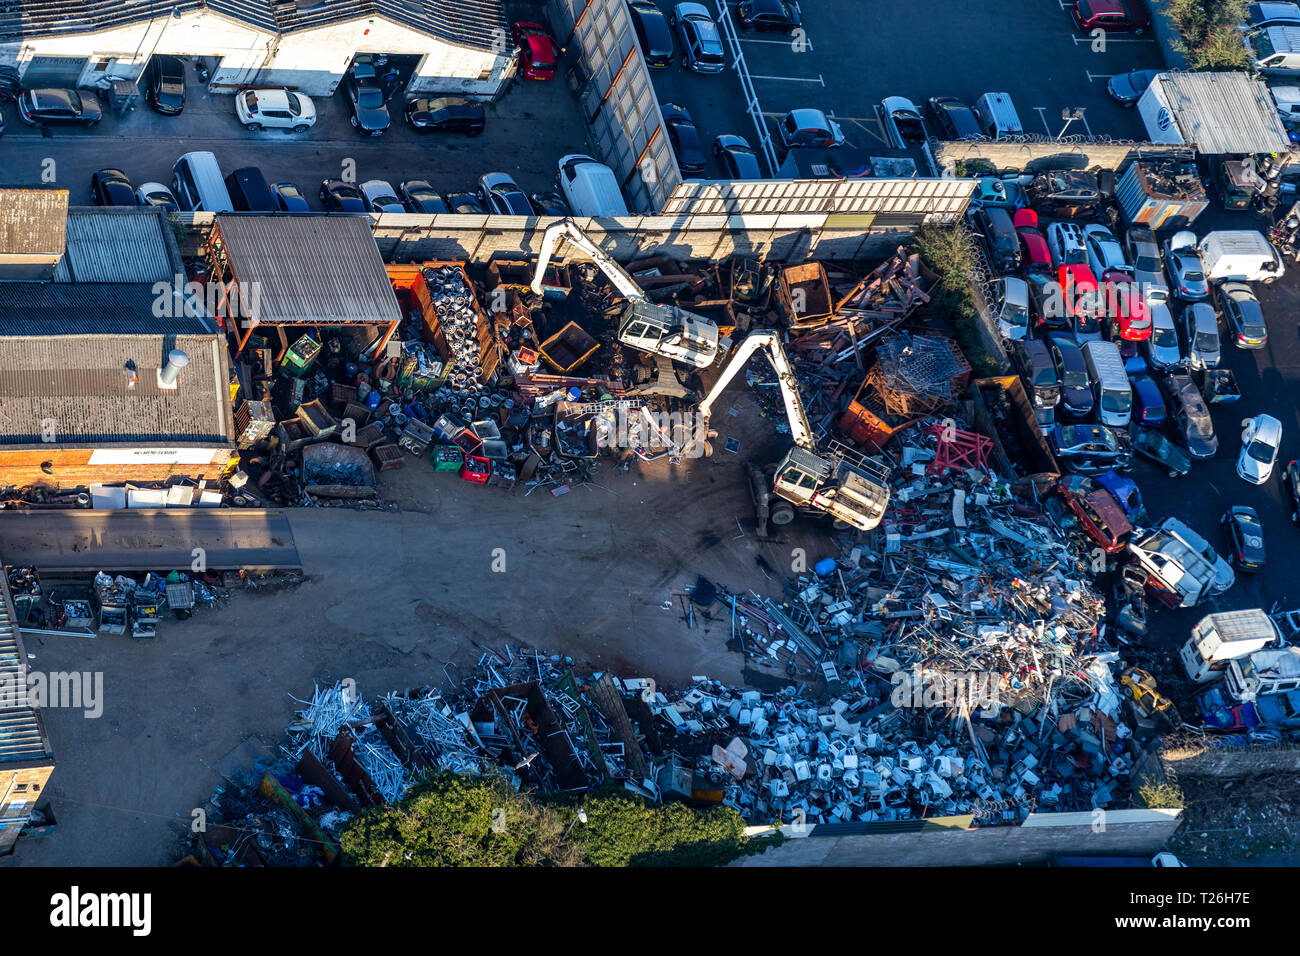 Dismantlers Stock Photos & Dismantlers Stock Images - Alamy